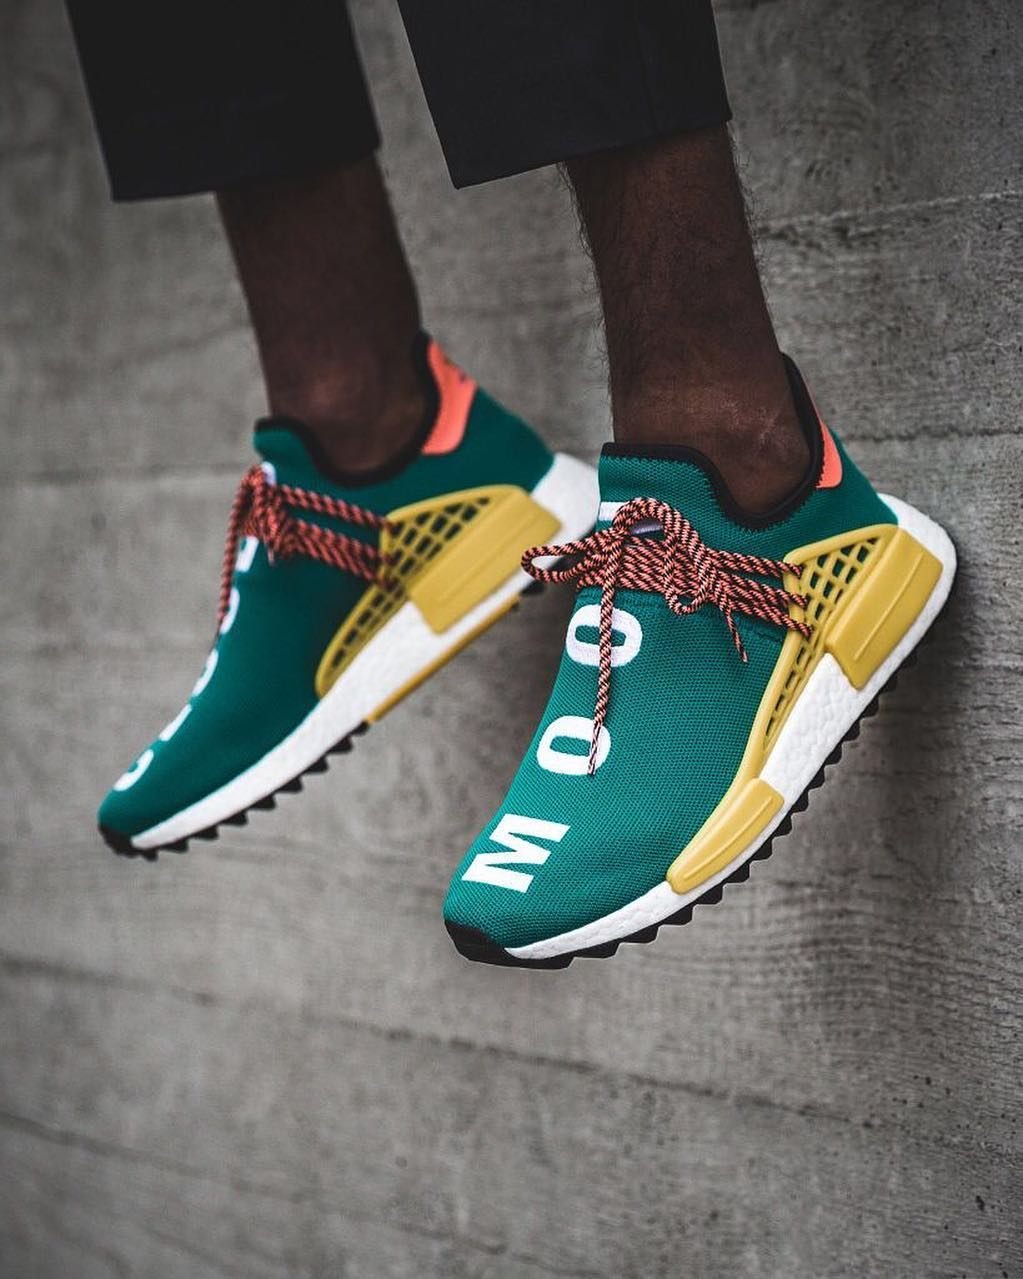 079a05b146db4 Pharrell Williams x adidas NMD Human Race